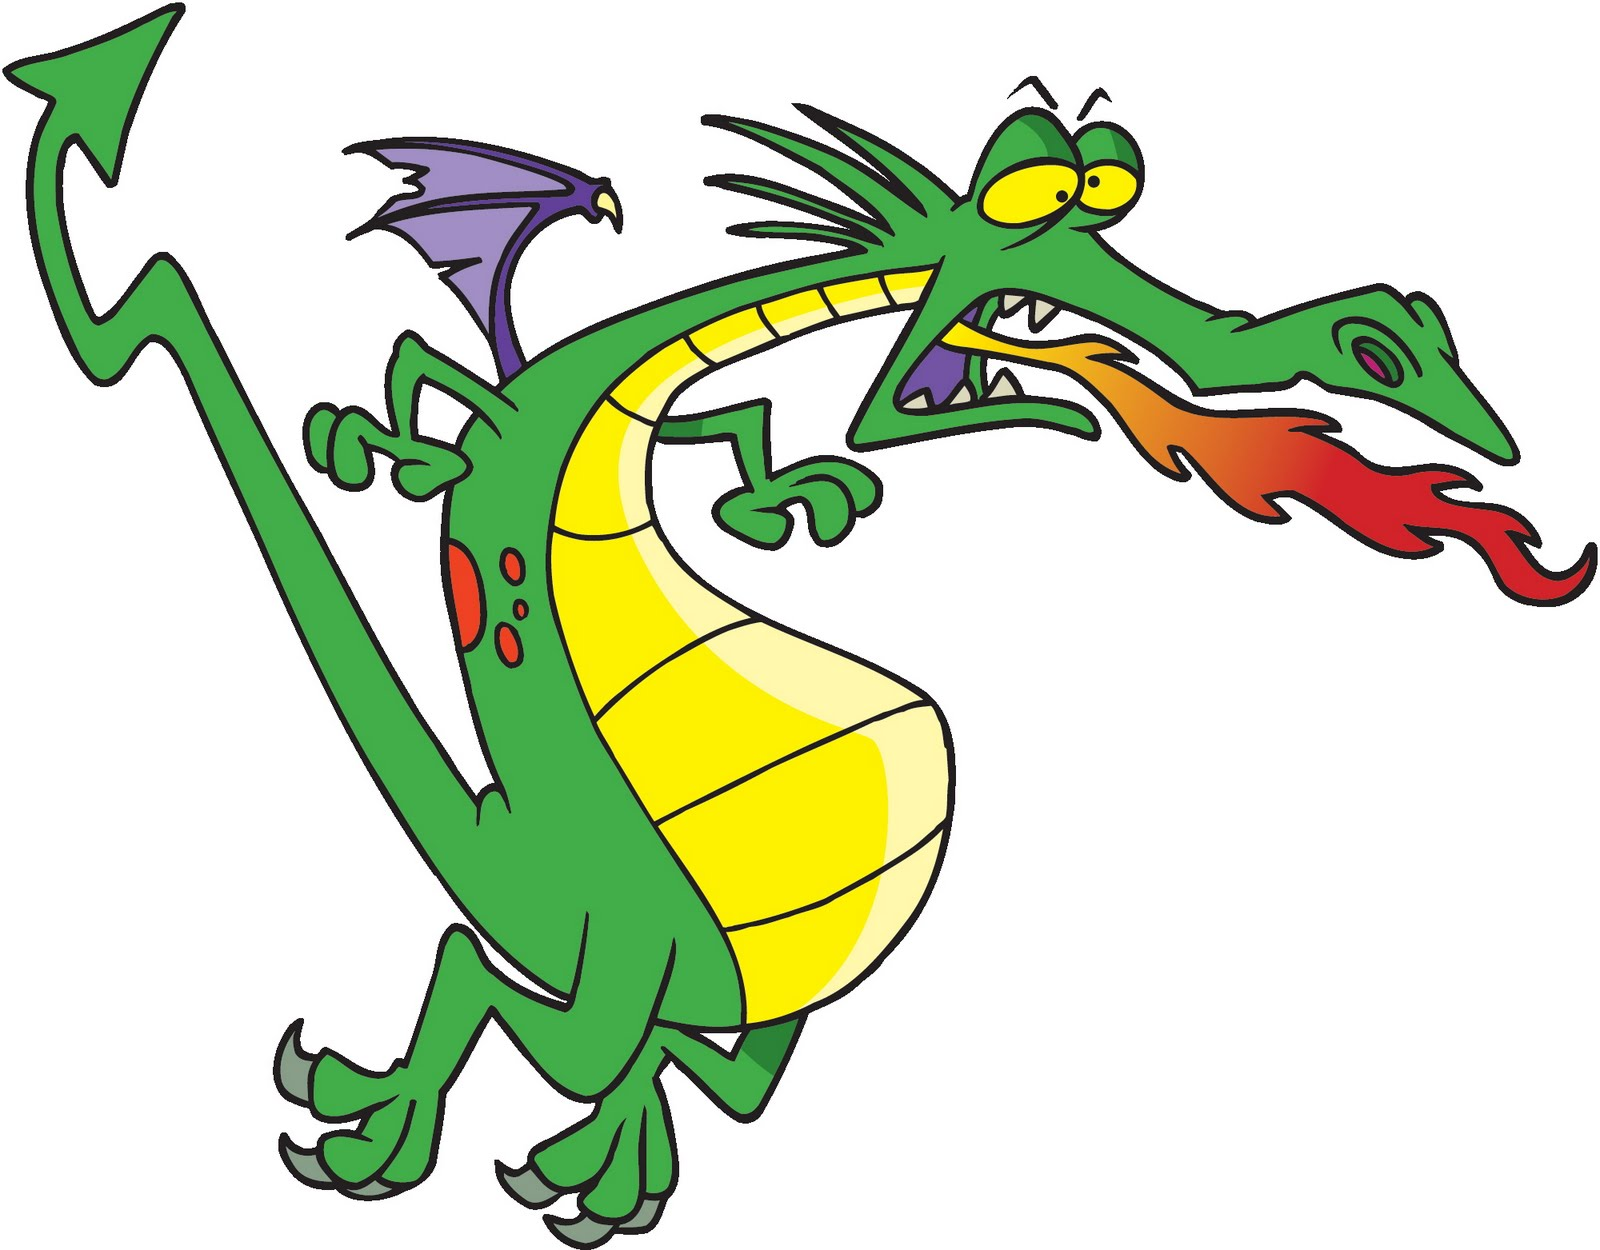 fire breathing dragon clipart clipart suggest dragon clipart cut dragon clipart silhoette